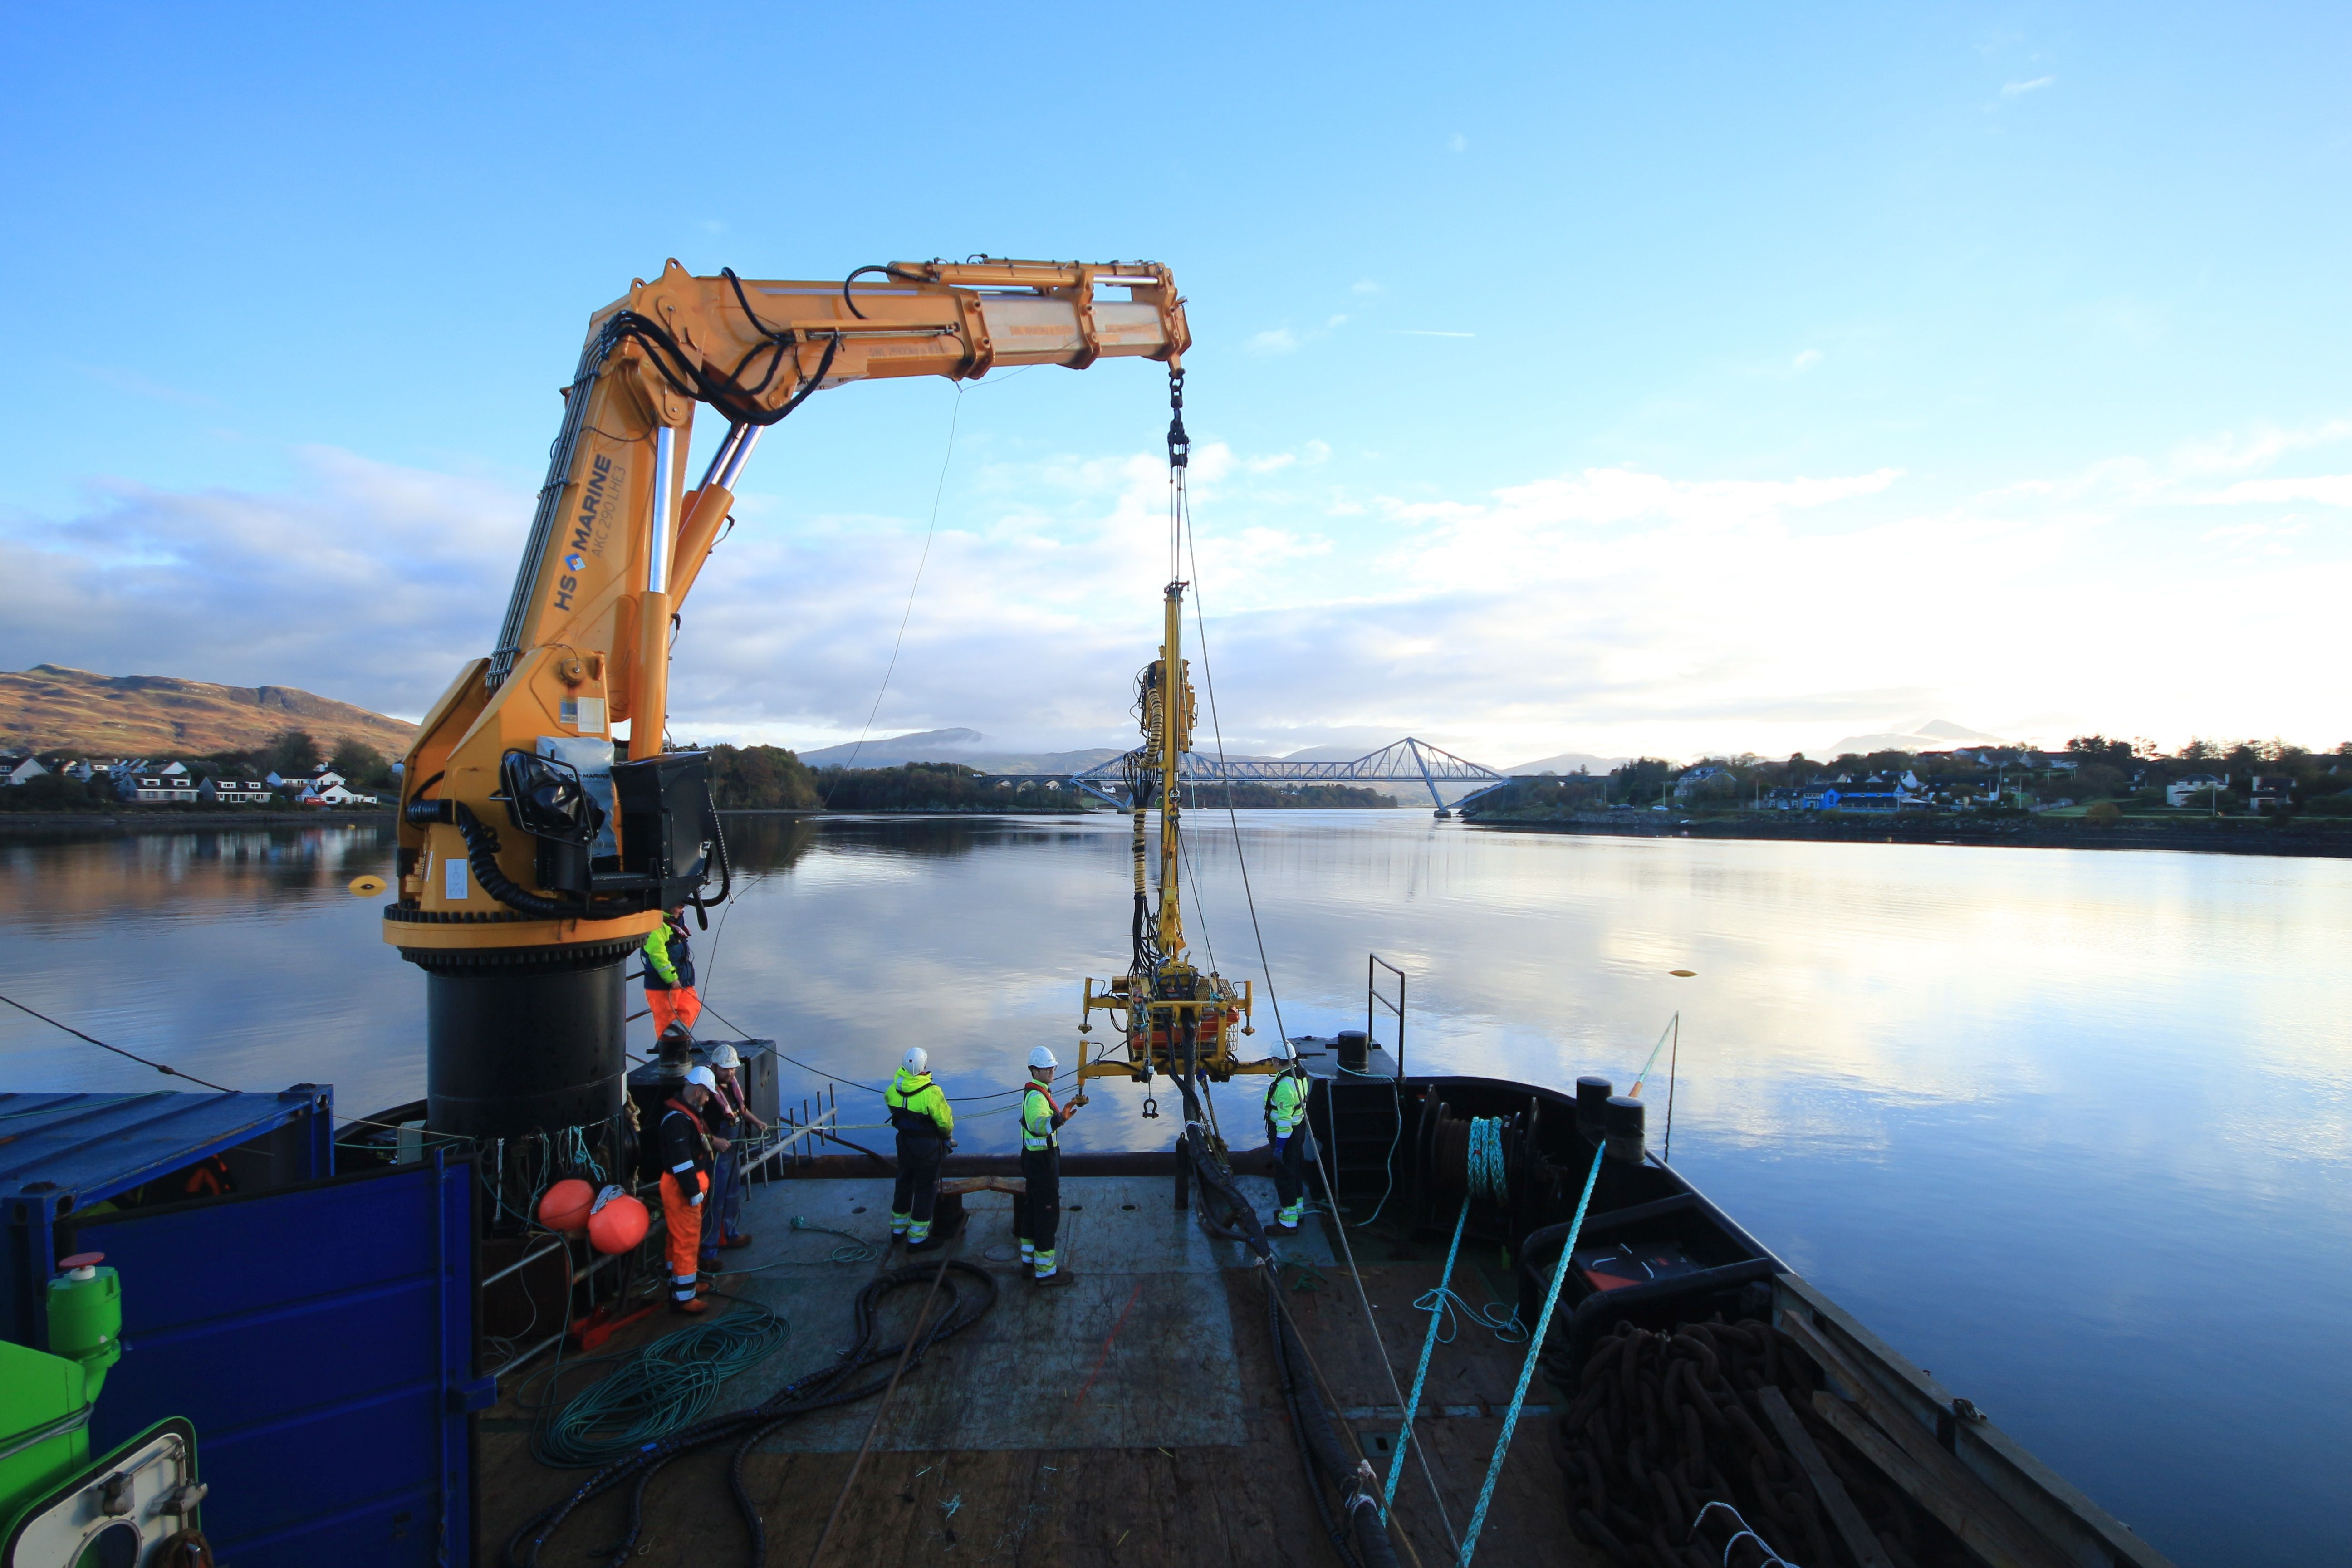 Anchoring technology - the new model will first be tested in the Civil Engineering department at the University of Dundee